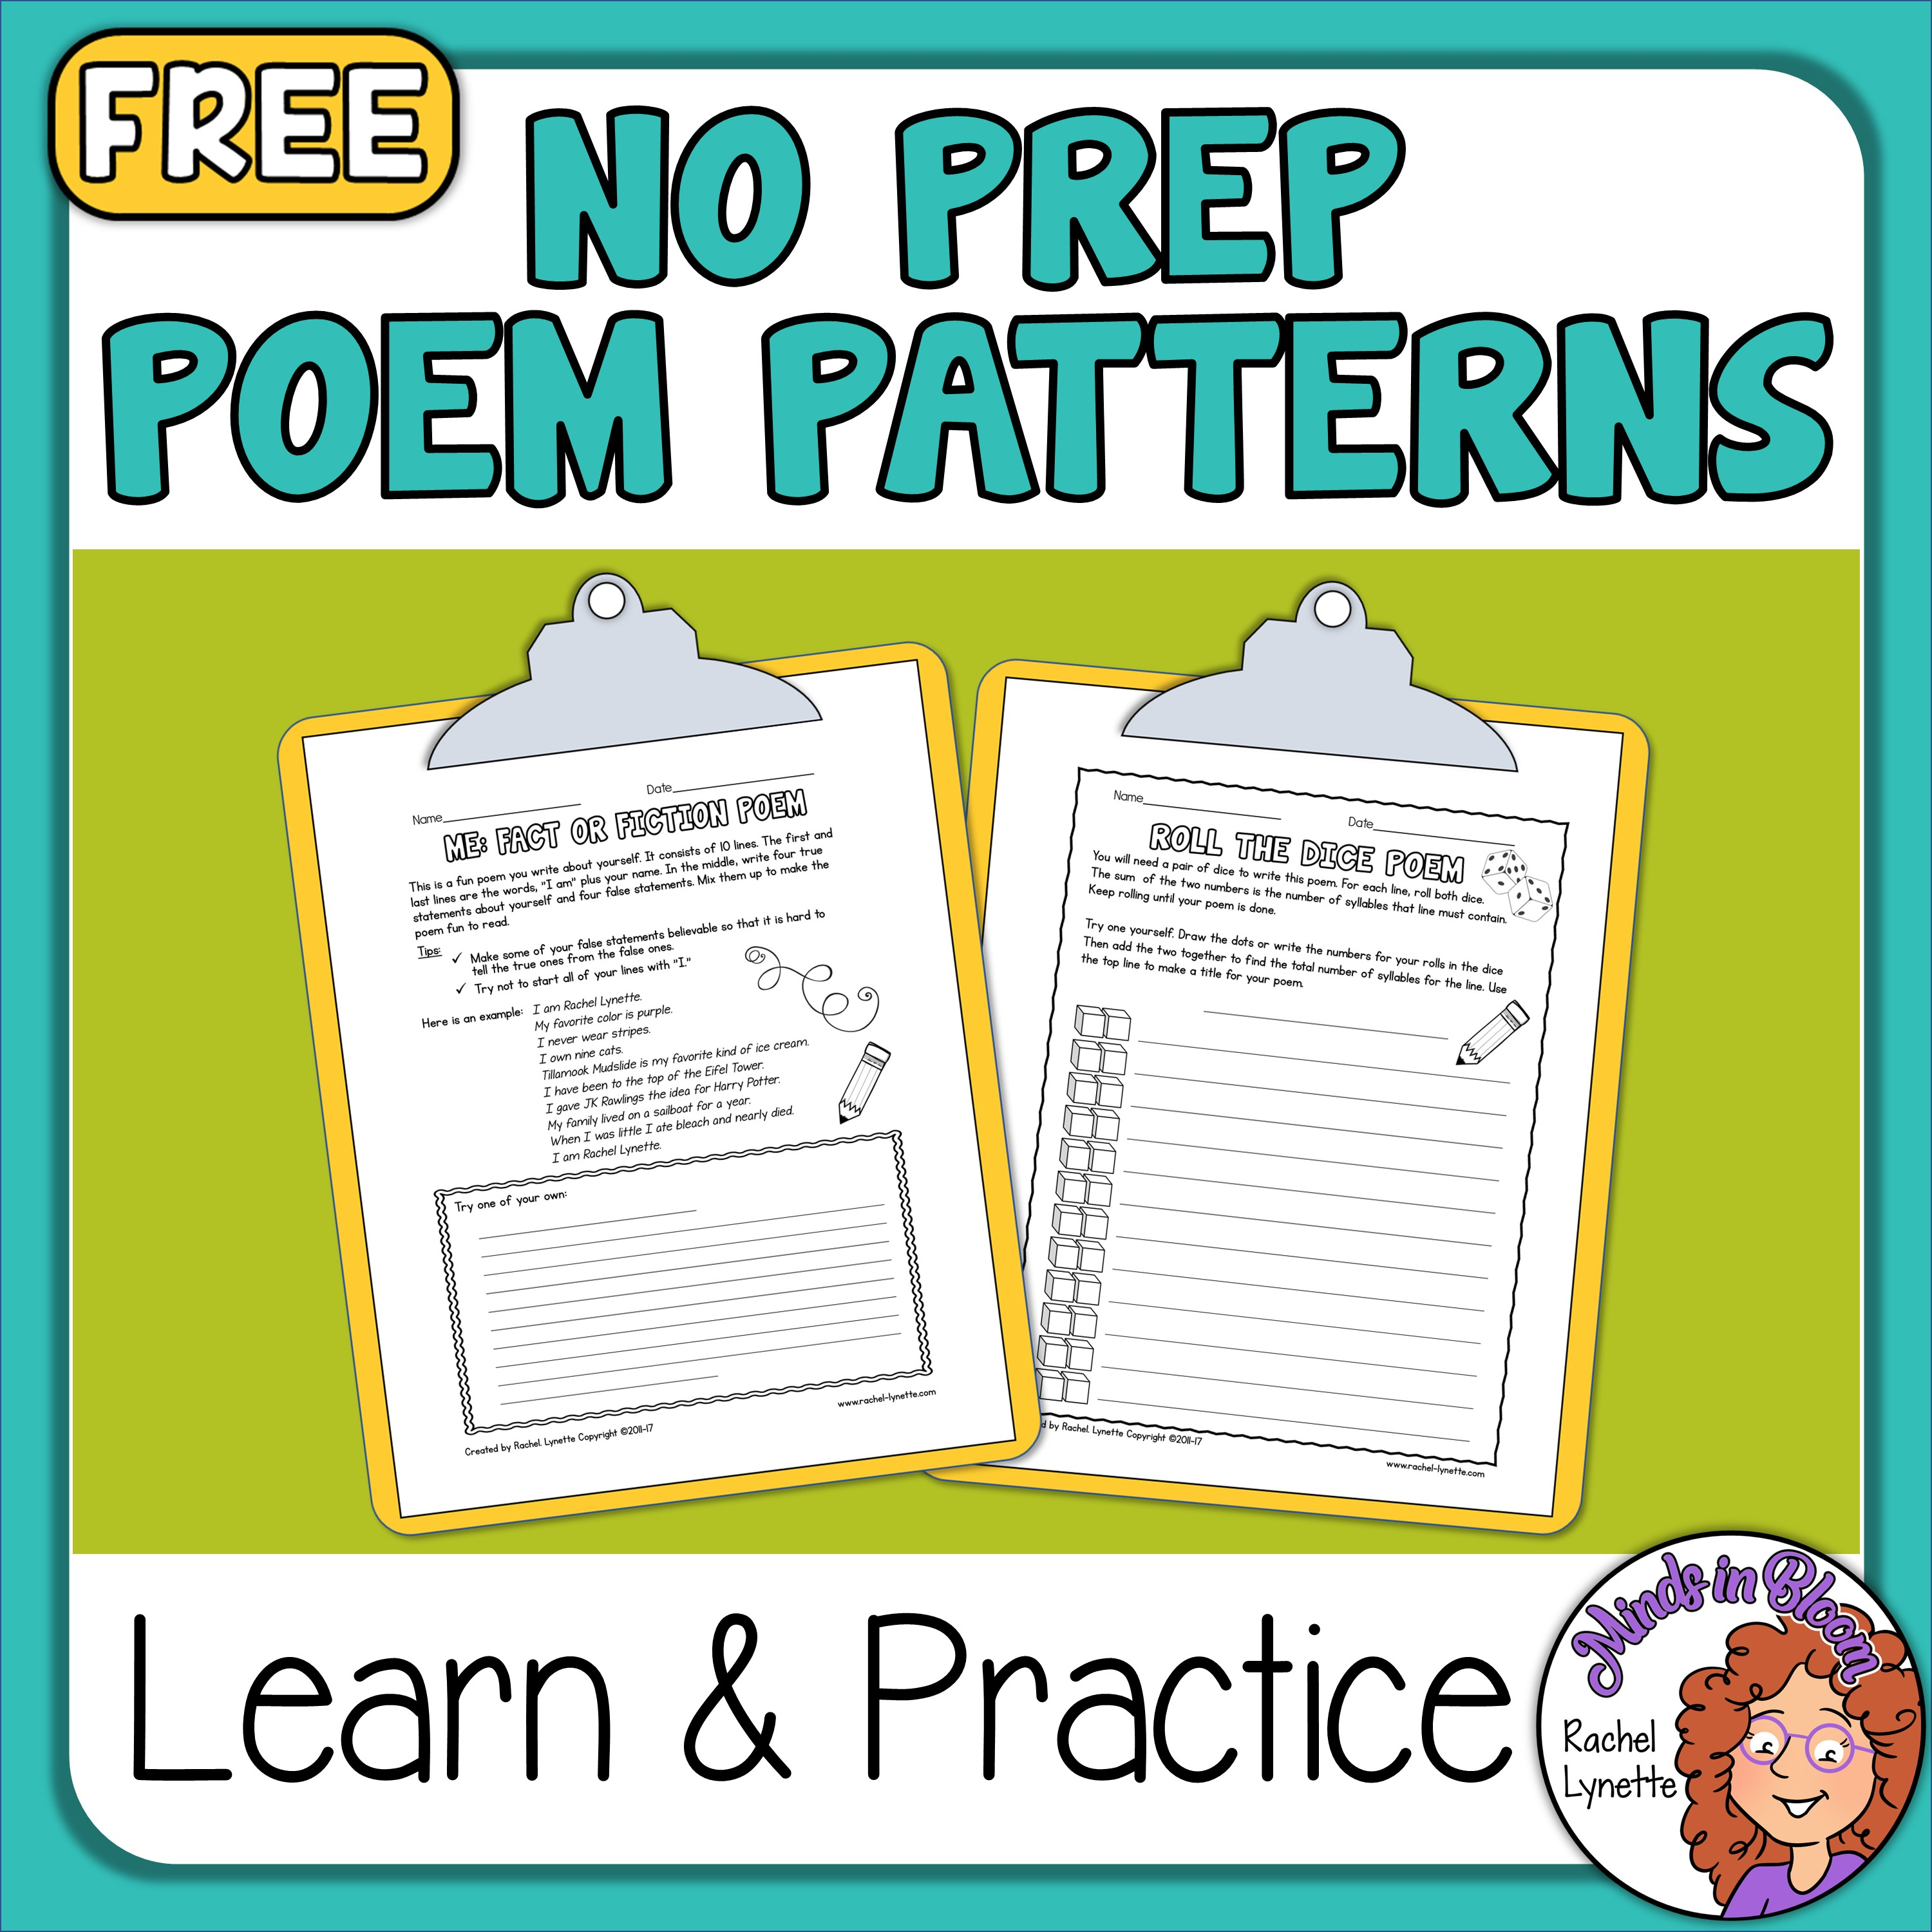 Two Fun Poetry Patterns Image